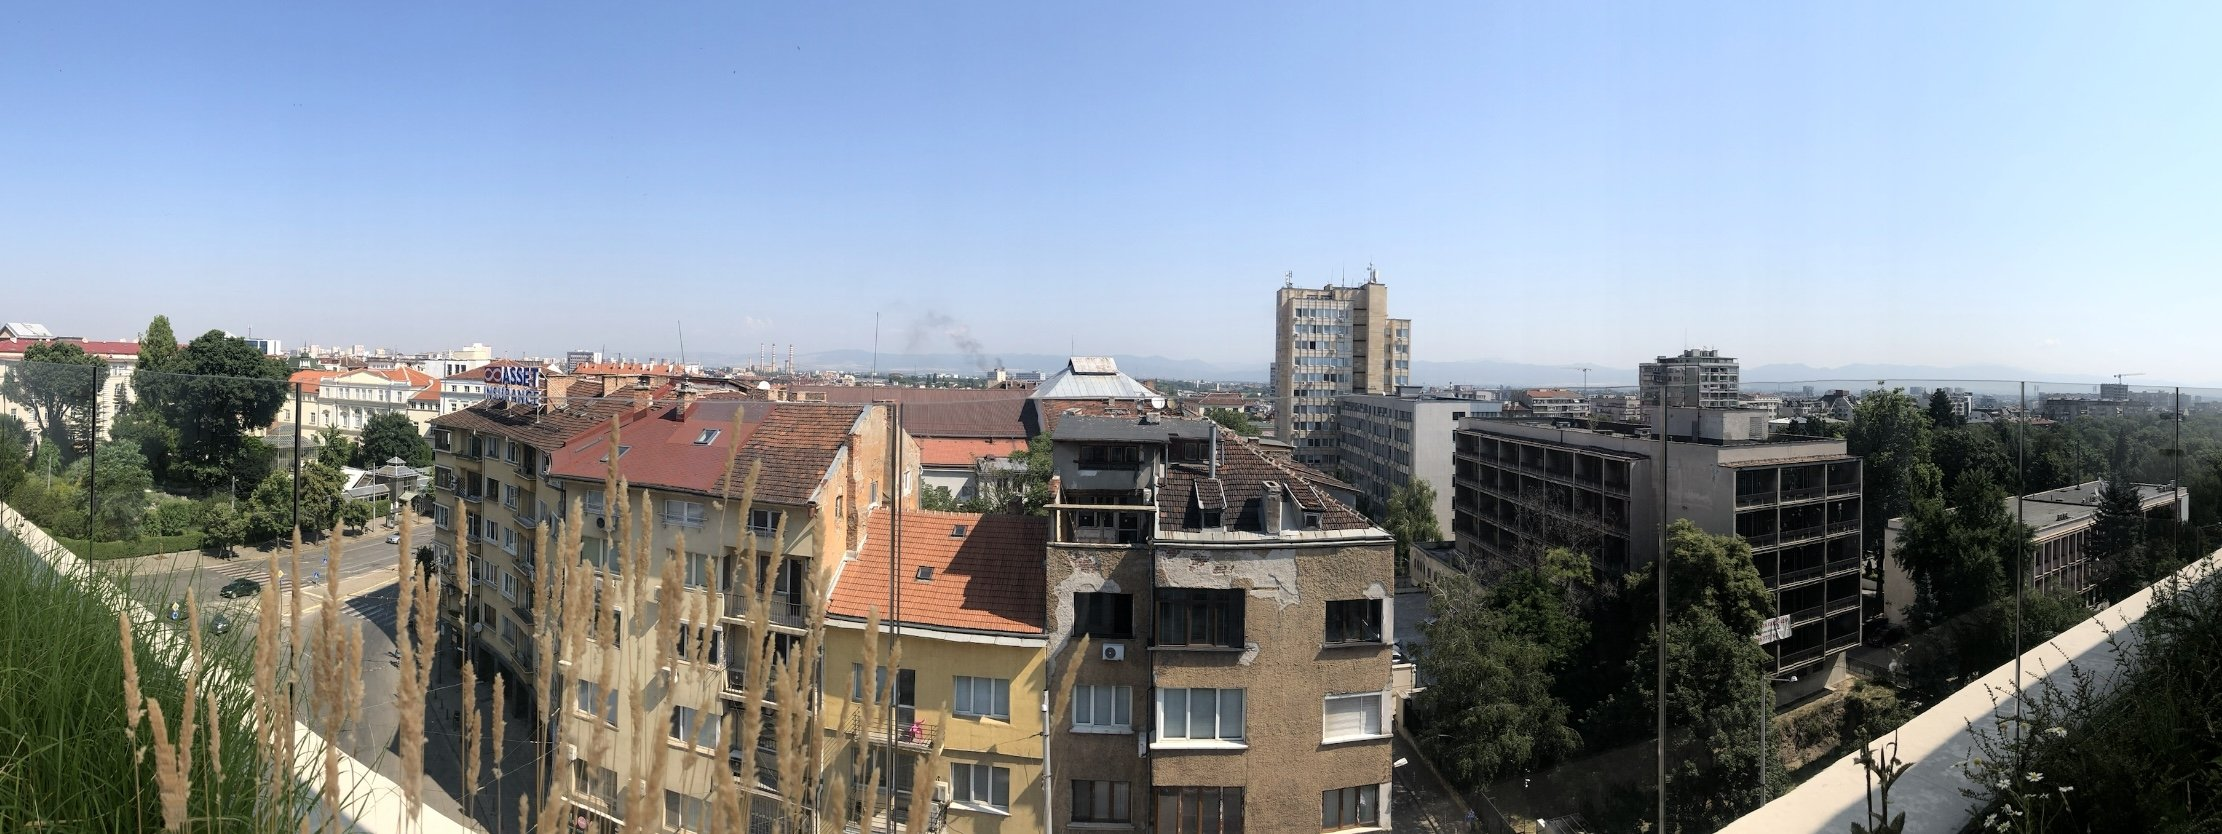 A panoramic view of Sofia from the top of Hyatt Regency Sofia, Bulgaria.